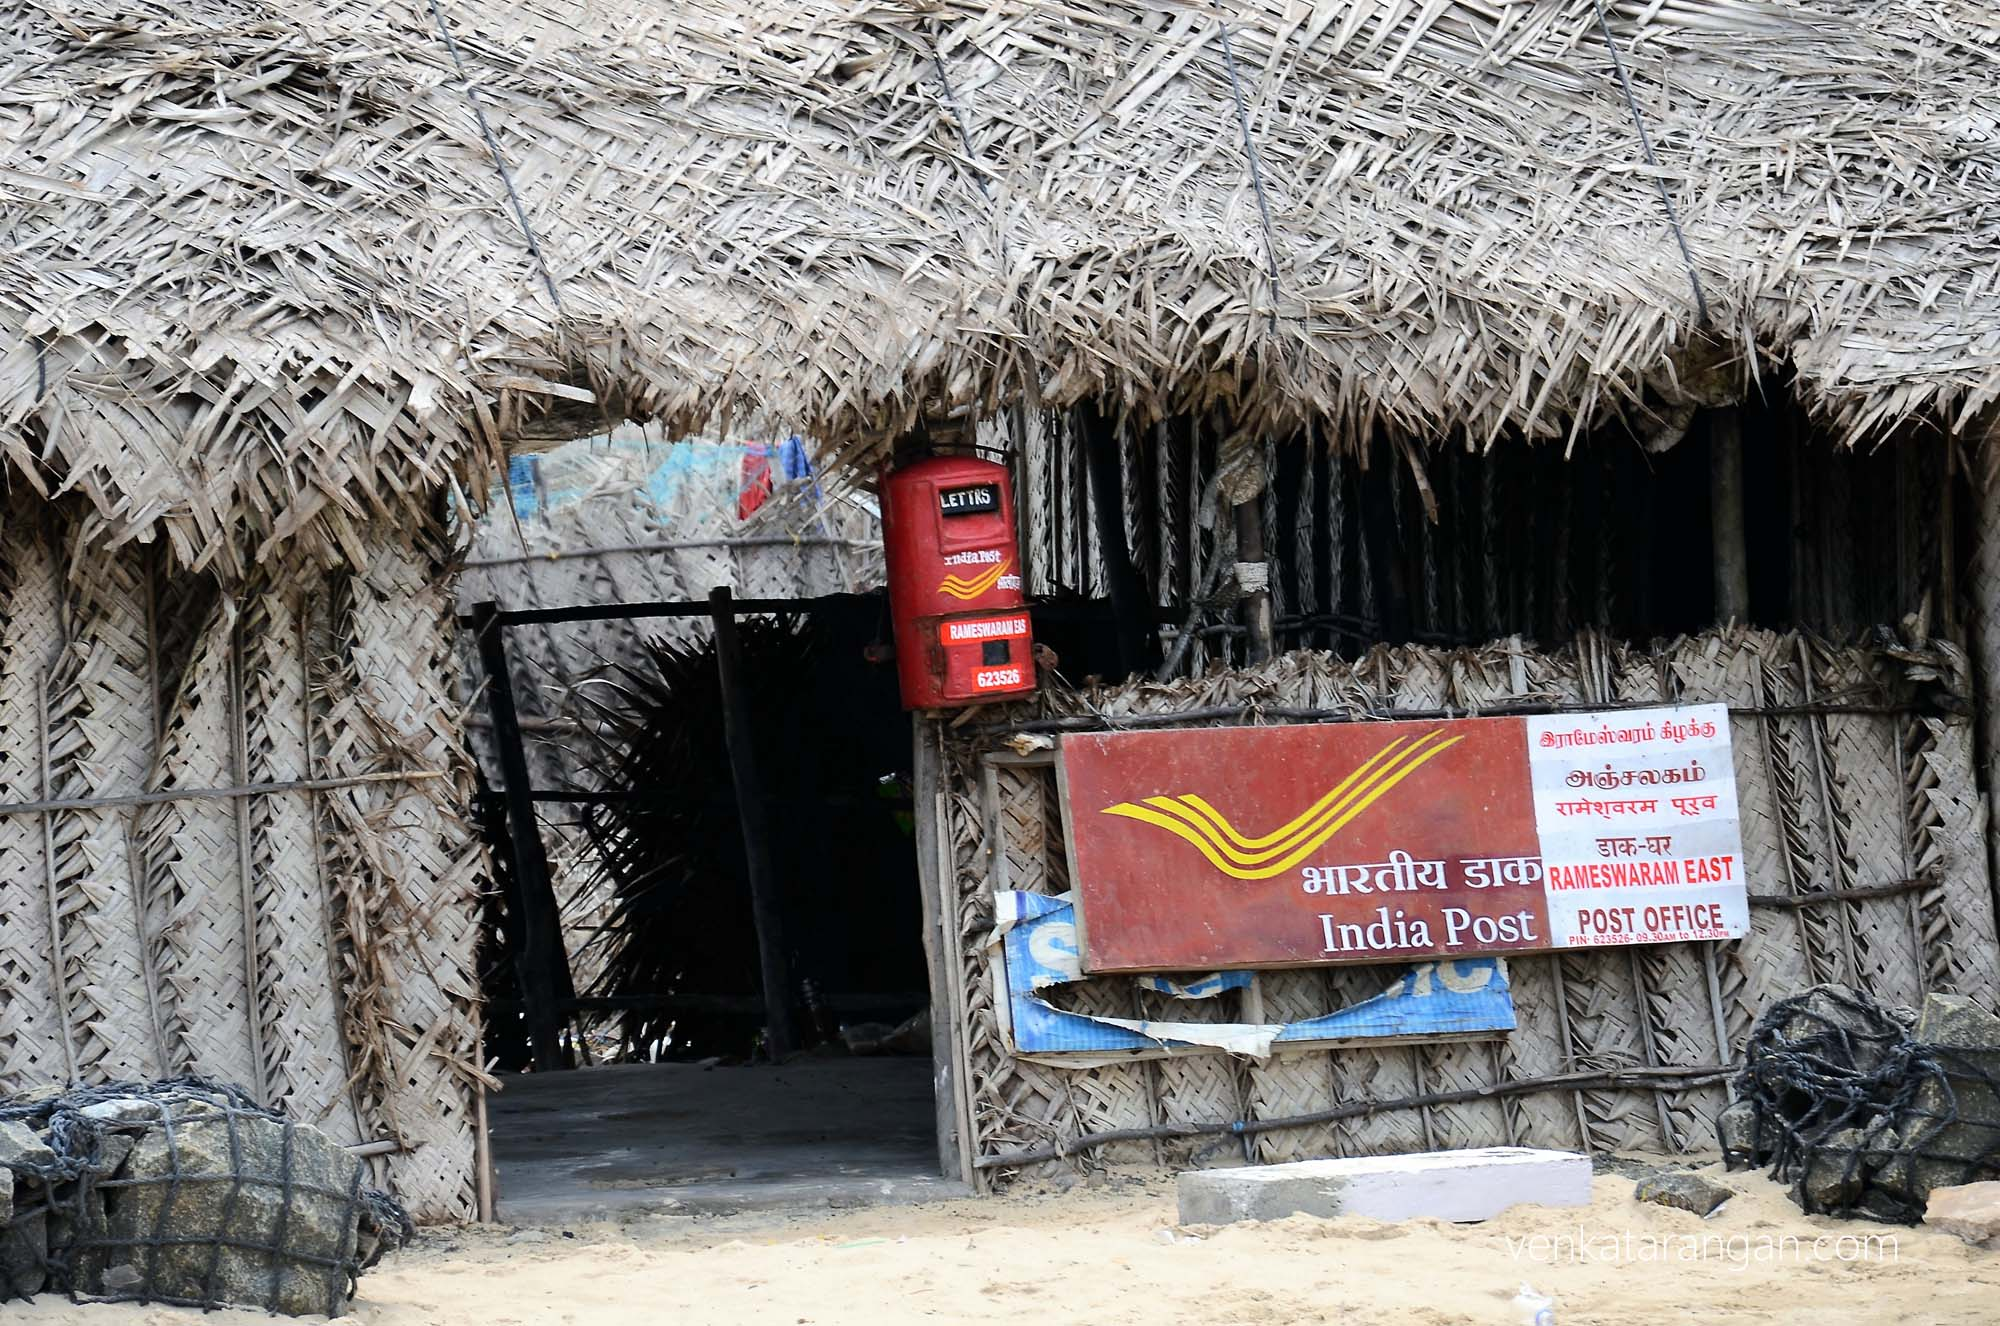 India Post - Post Office functioning from a hut